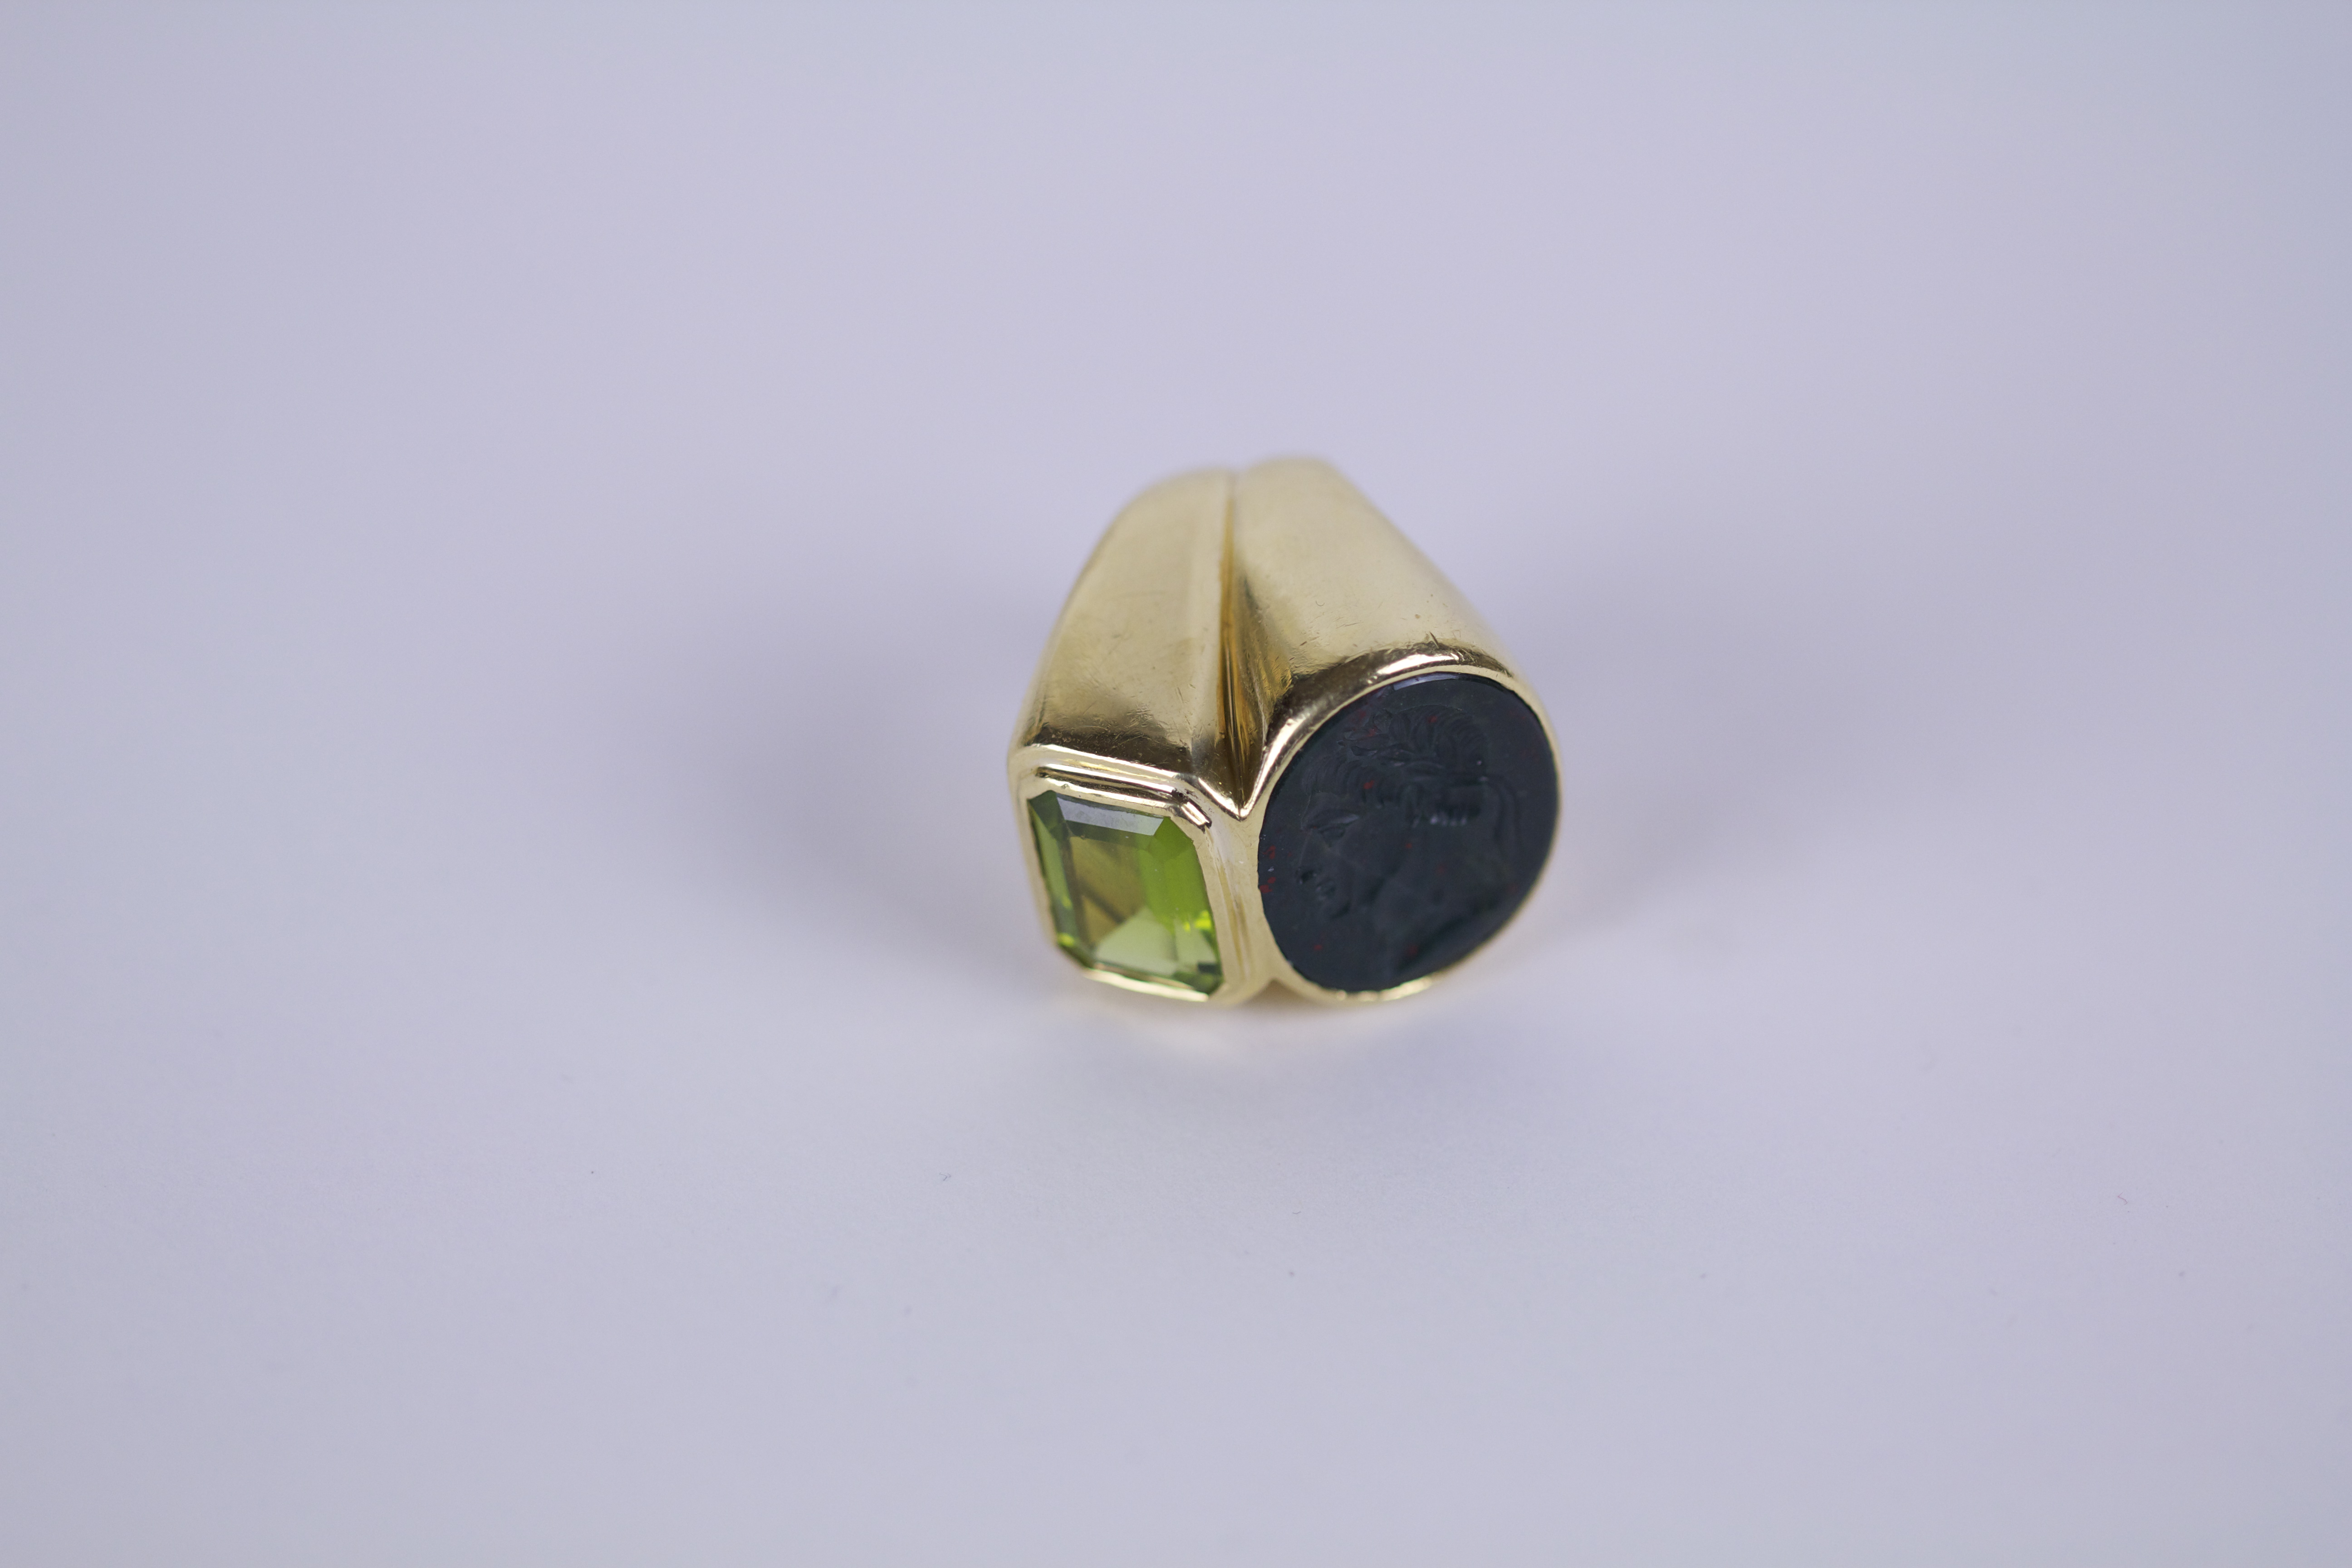 Gold Ring. Jewelry Repair and Restoration.